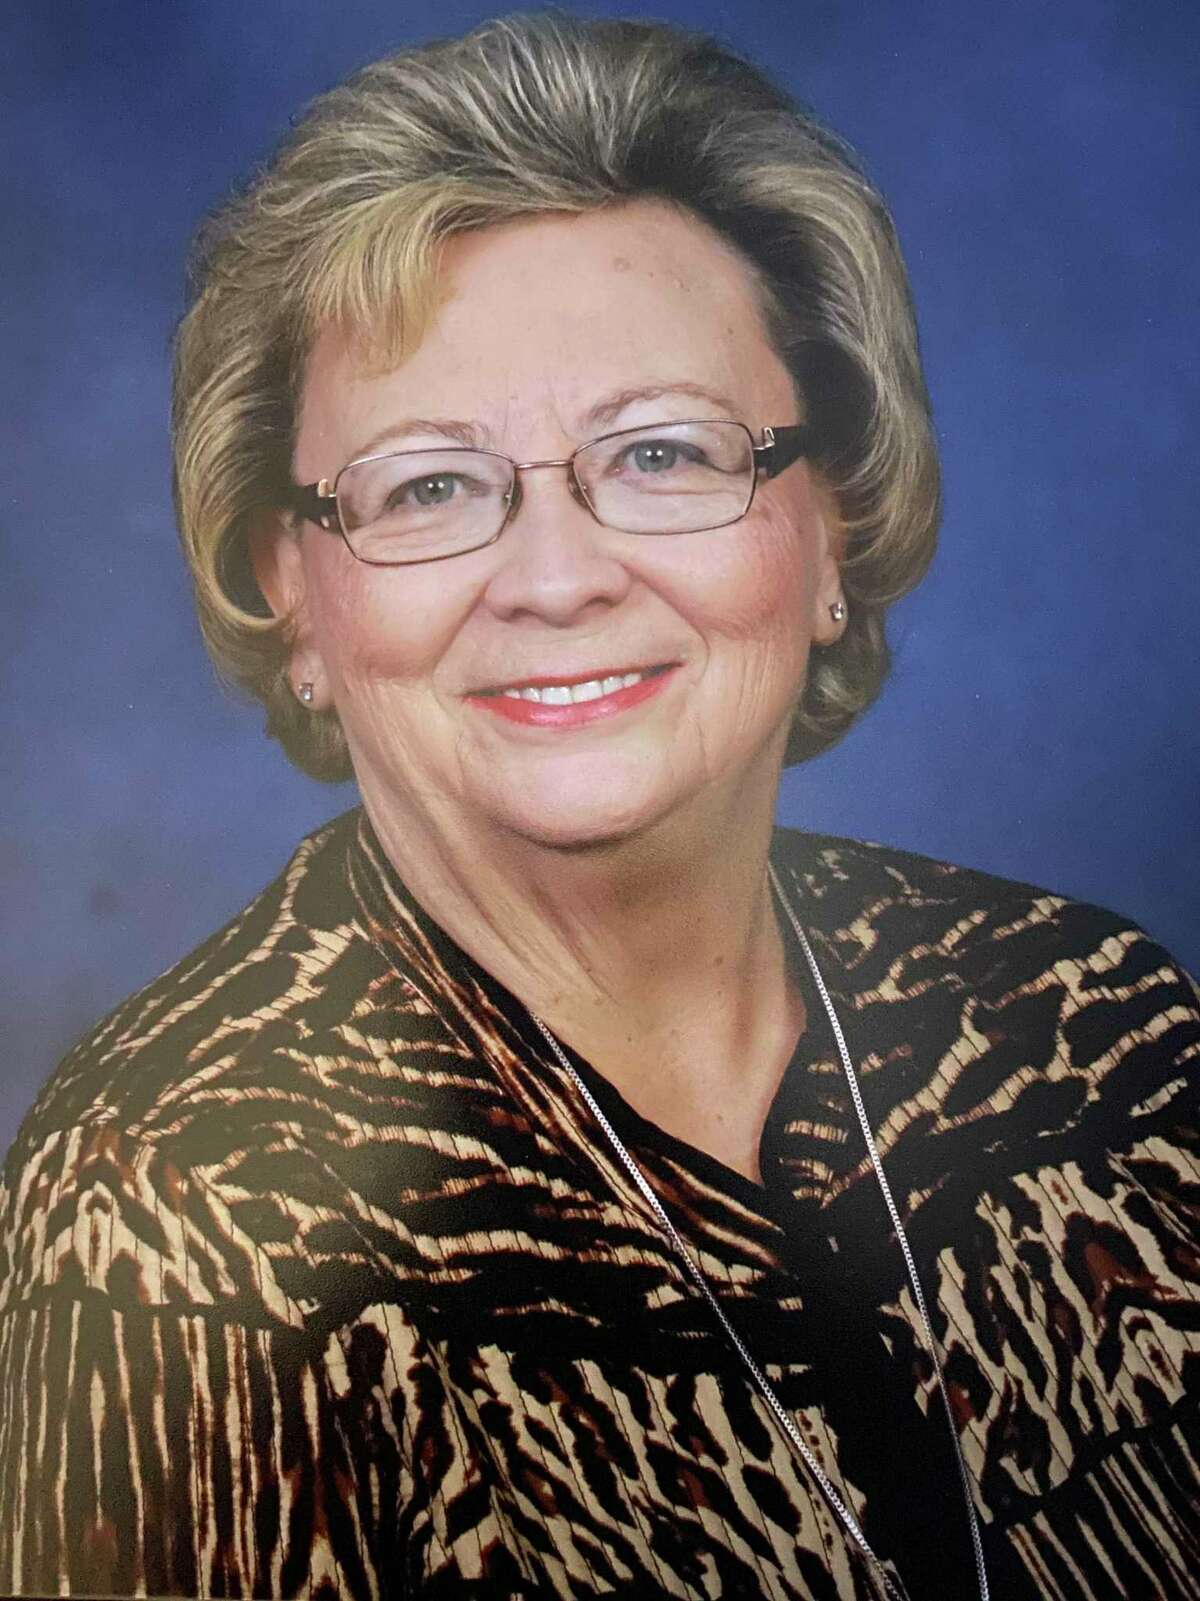 The city of Humble will hold a runoff election on Dec. 12 for the city council place 4 position. Pictured: Paula Settle